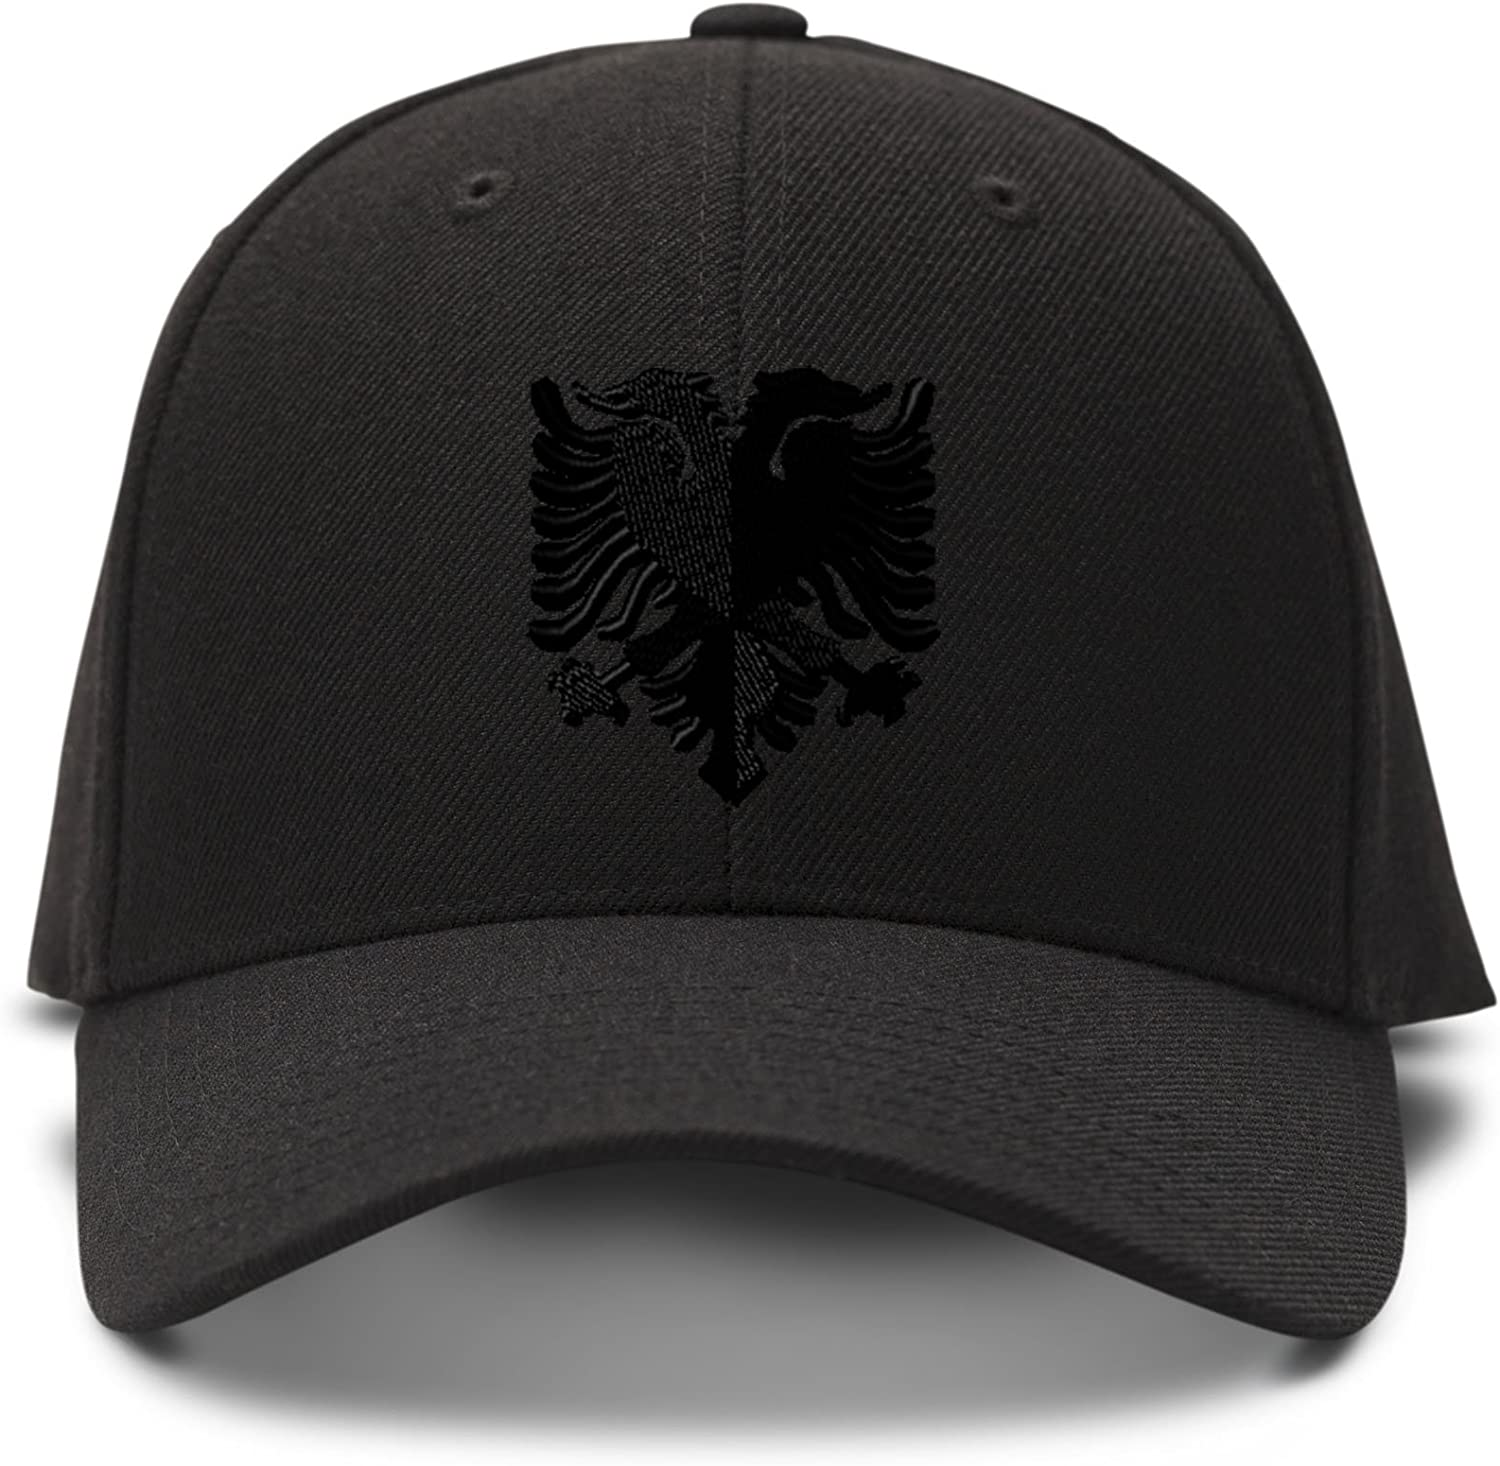 Speedy Pros Albanian Black Embroidered Adjustable Structured Baseball Hat, One Size